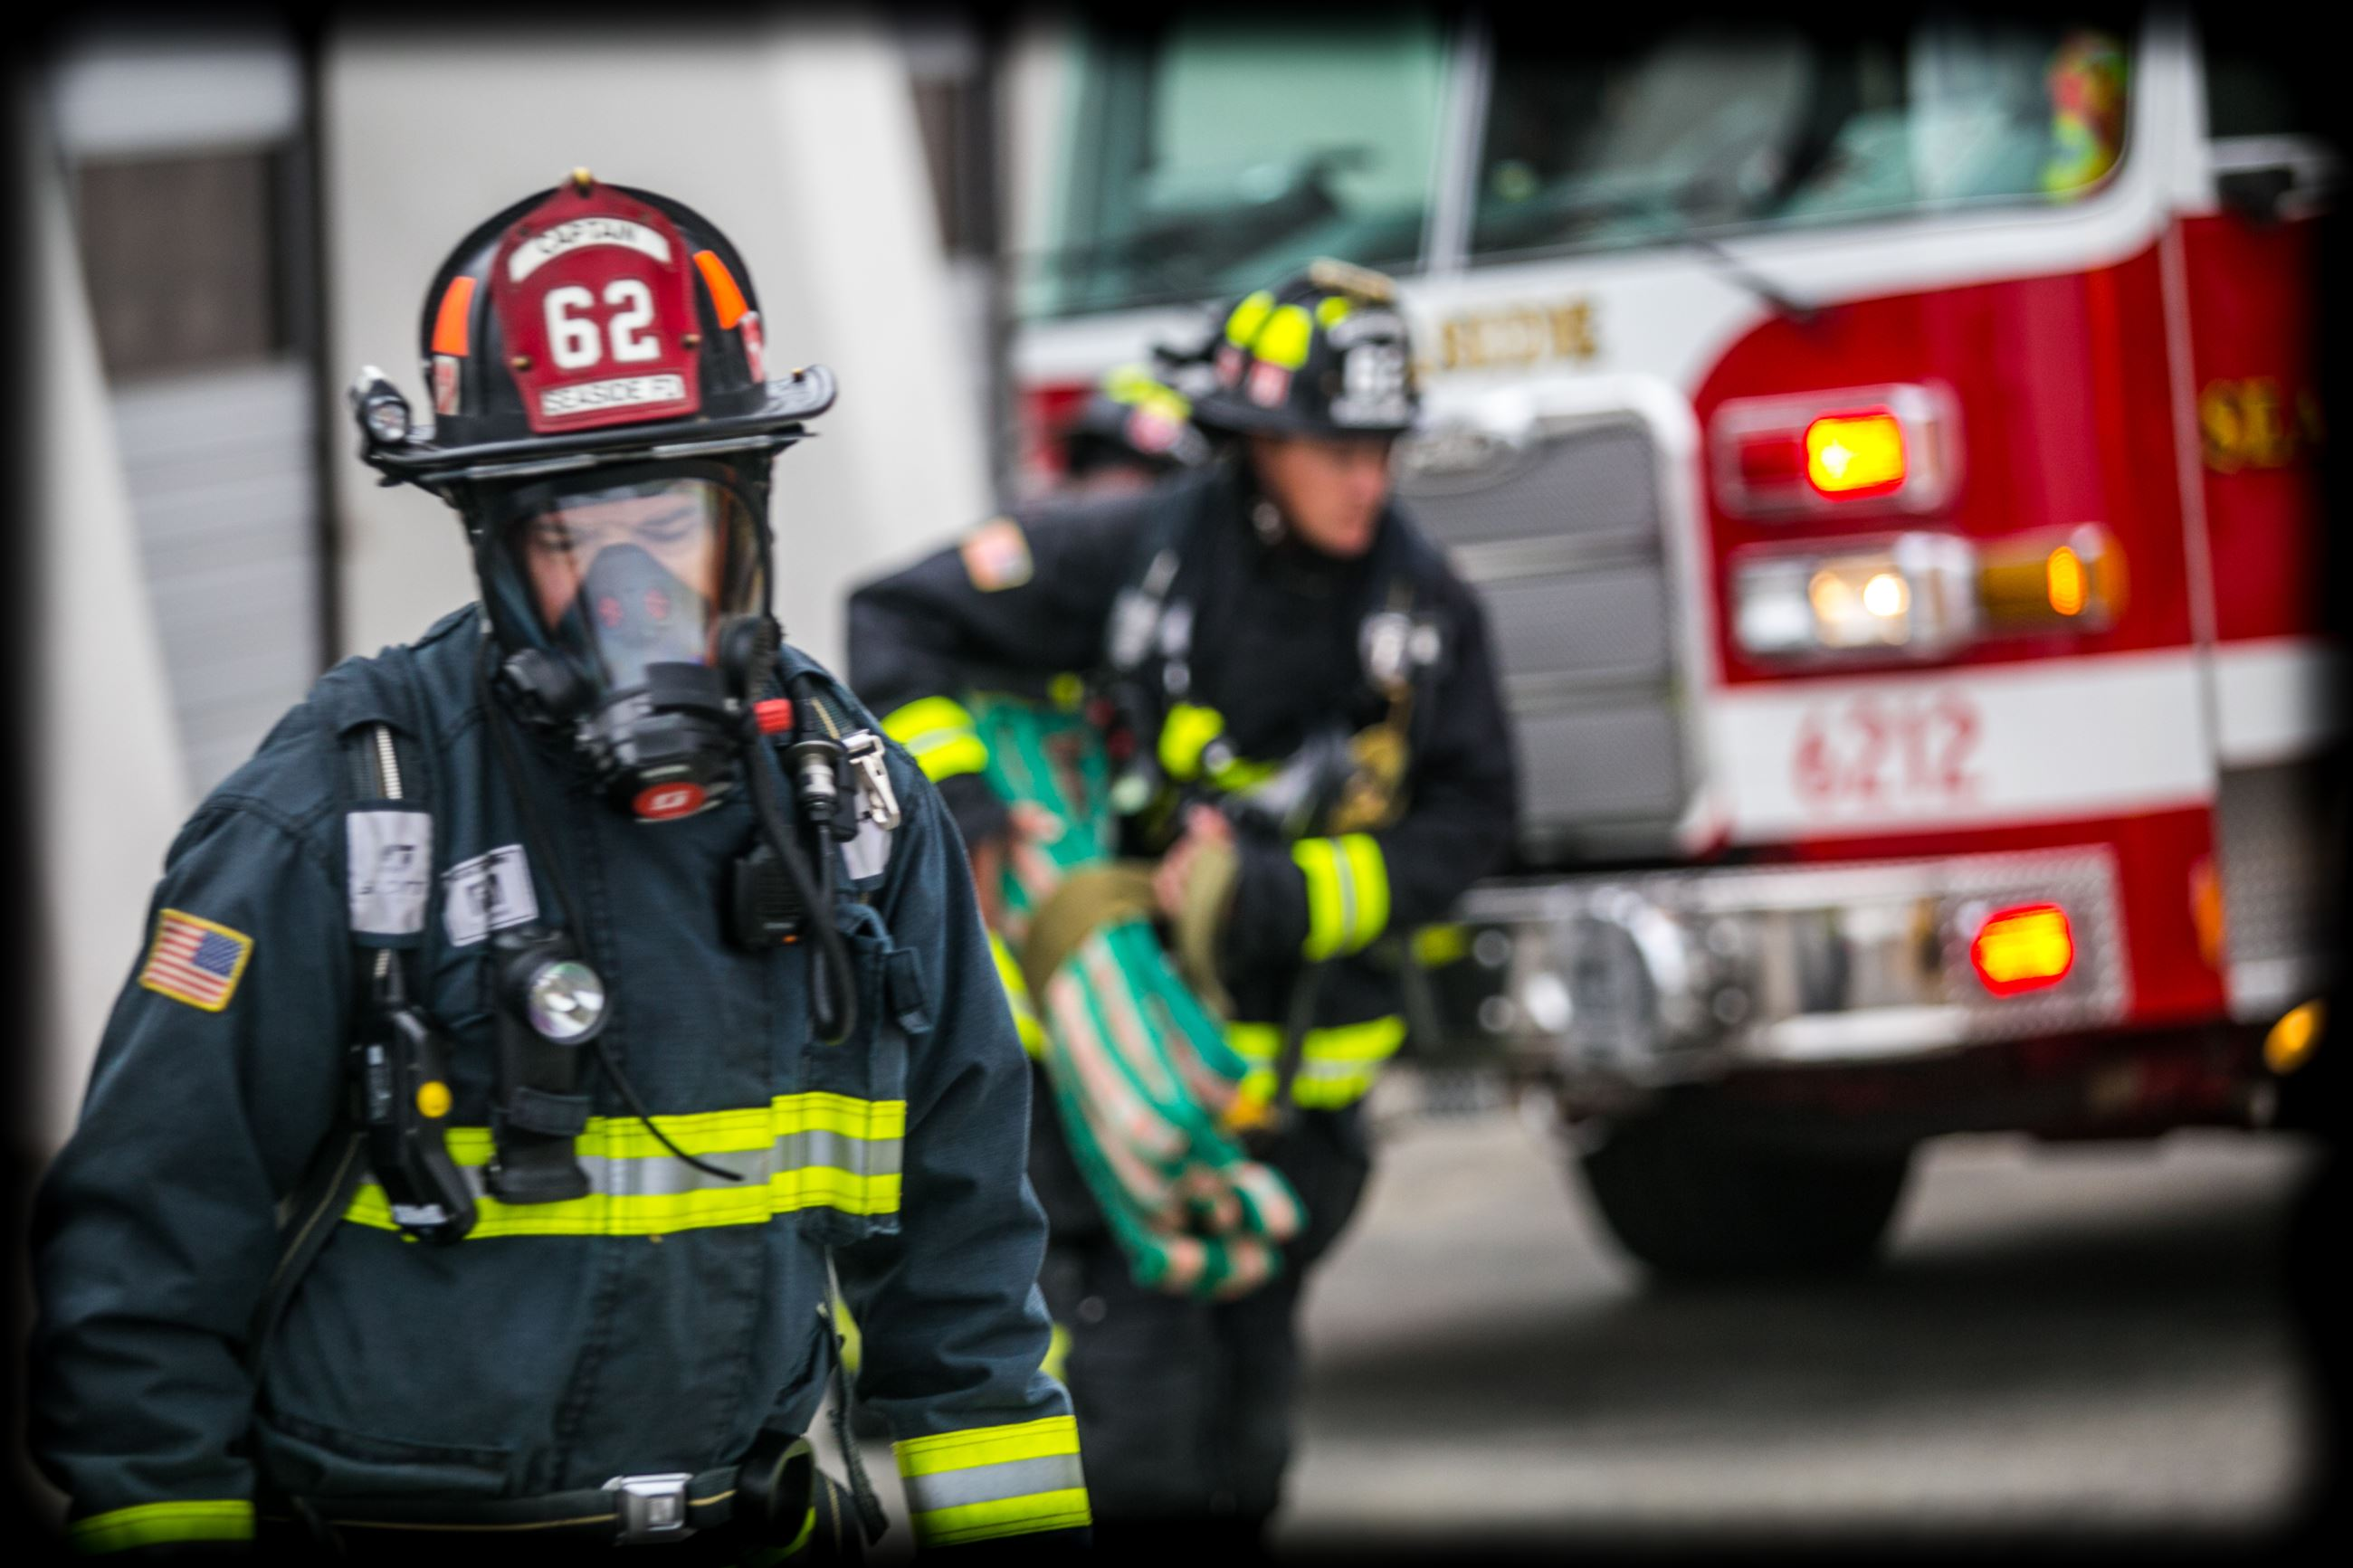 Two firefighters in gear